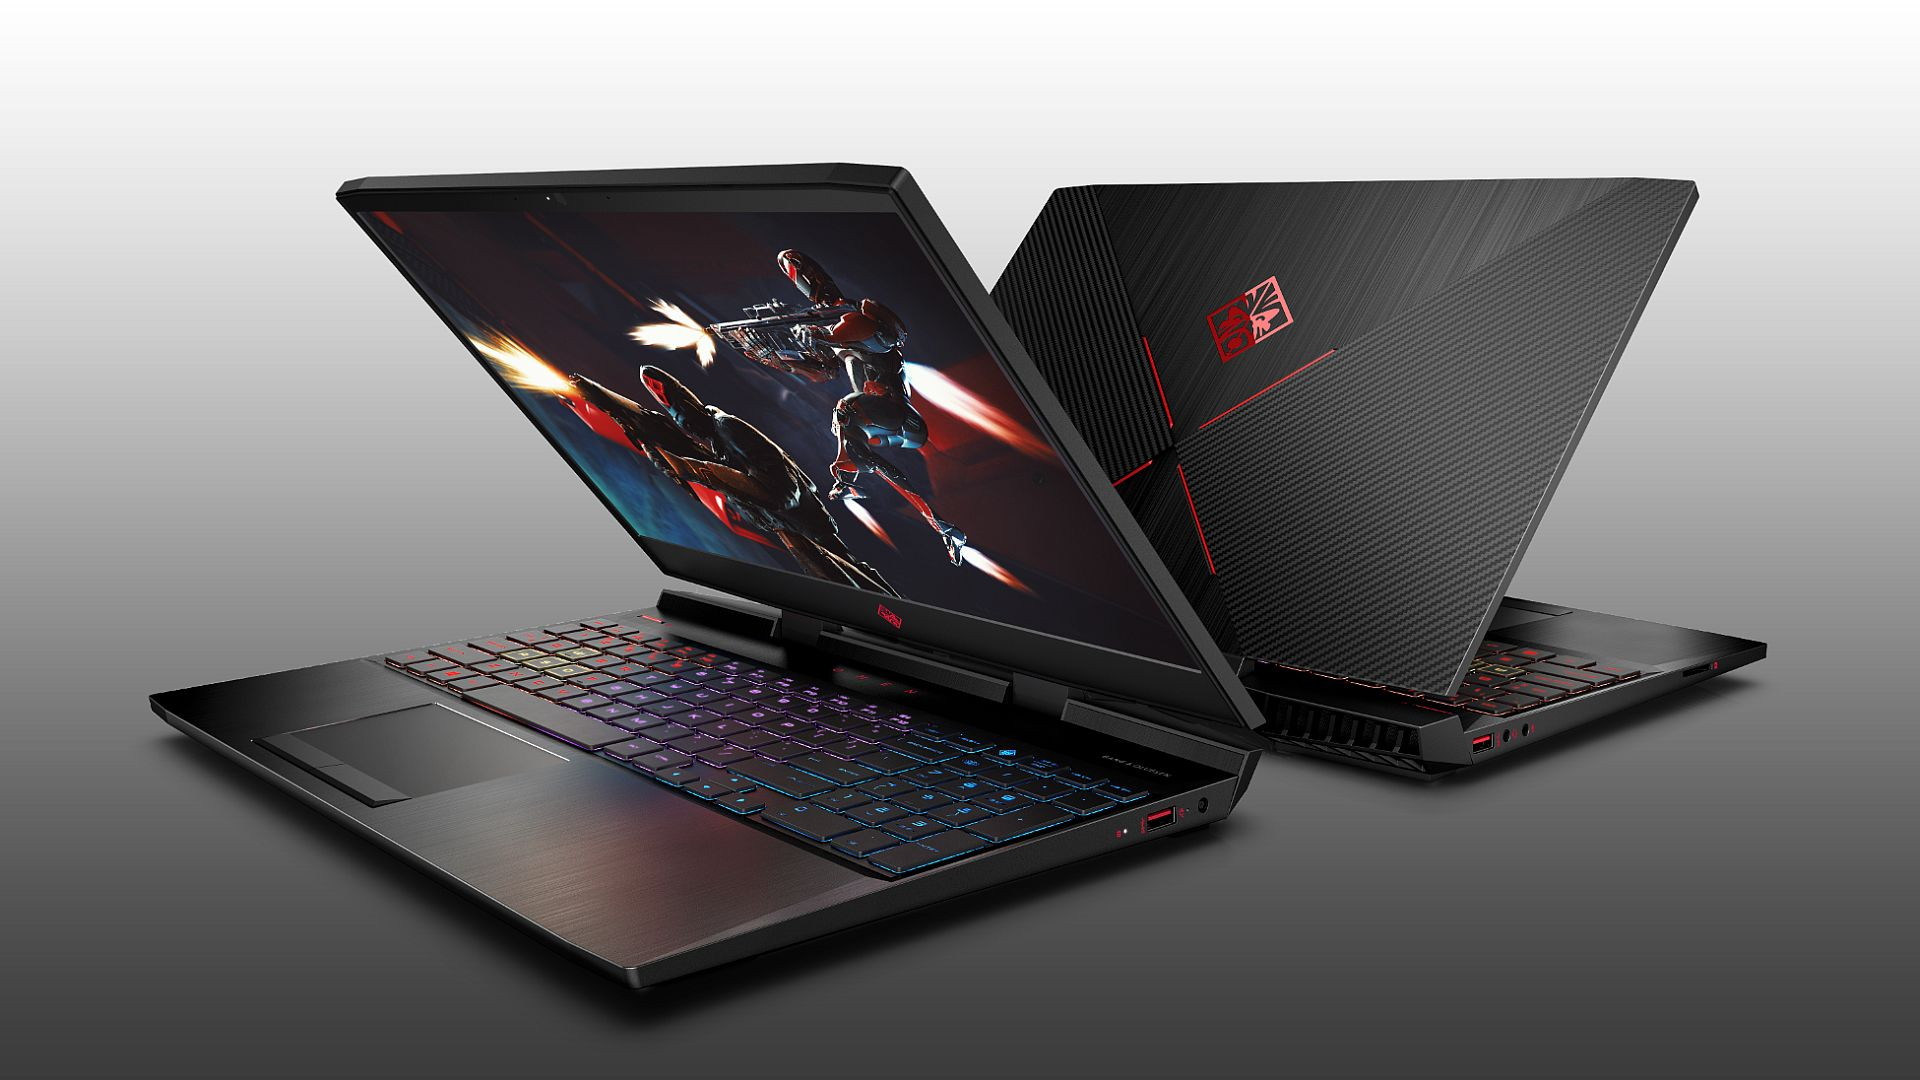 Save $288 on an Nvidia RTX gaming laptop for real-time ray tracing on the go